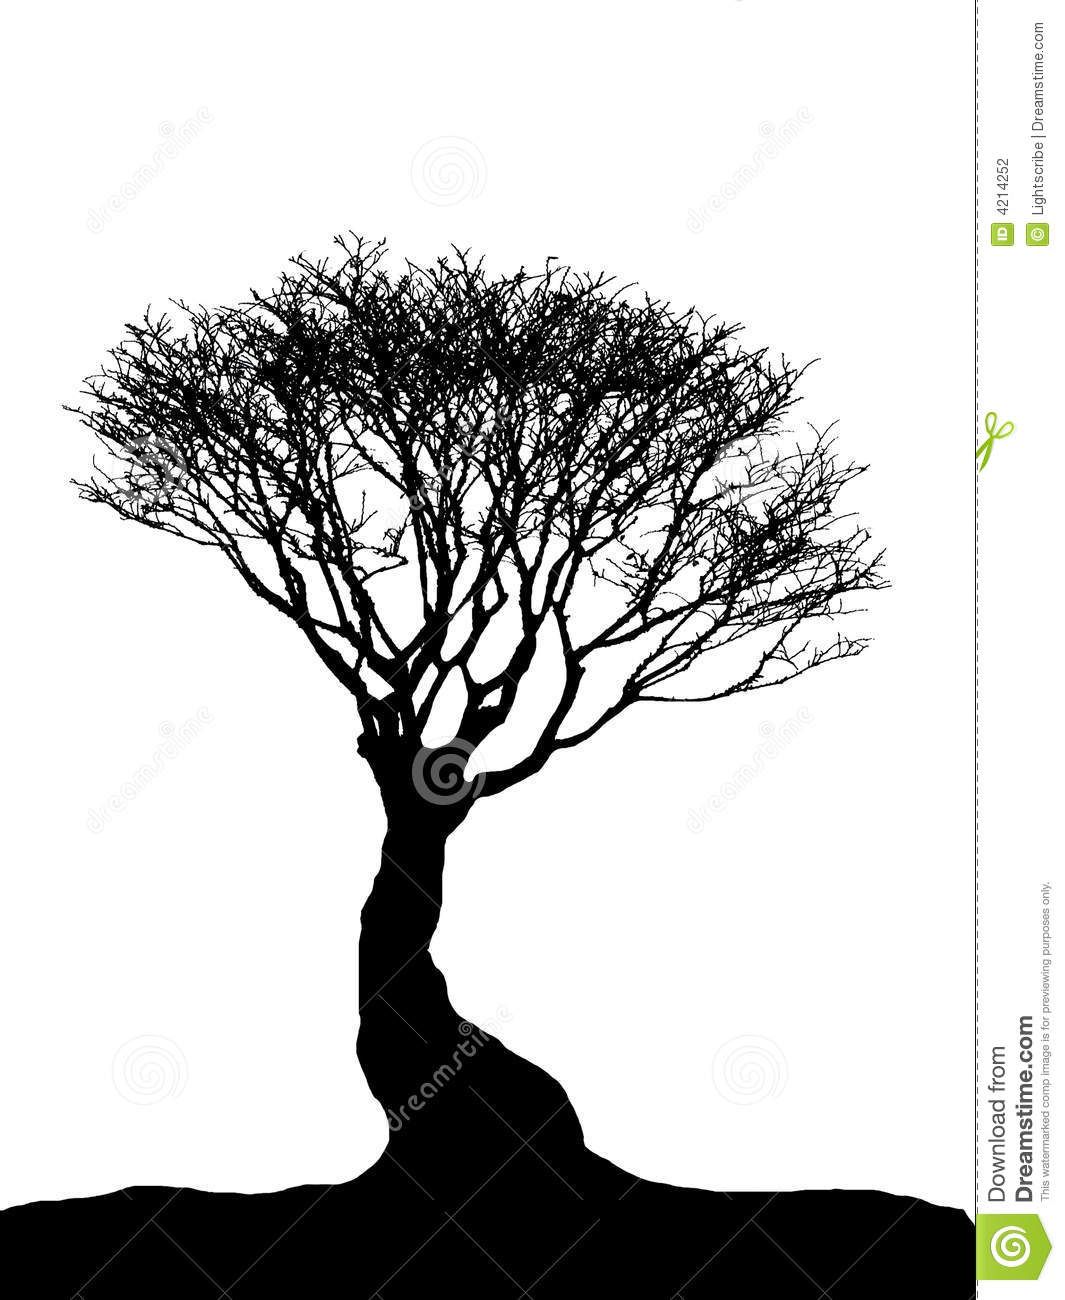 cypress tree silhouette cypress trees clipart 20 free cliparts download images cypress tree silhouette